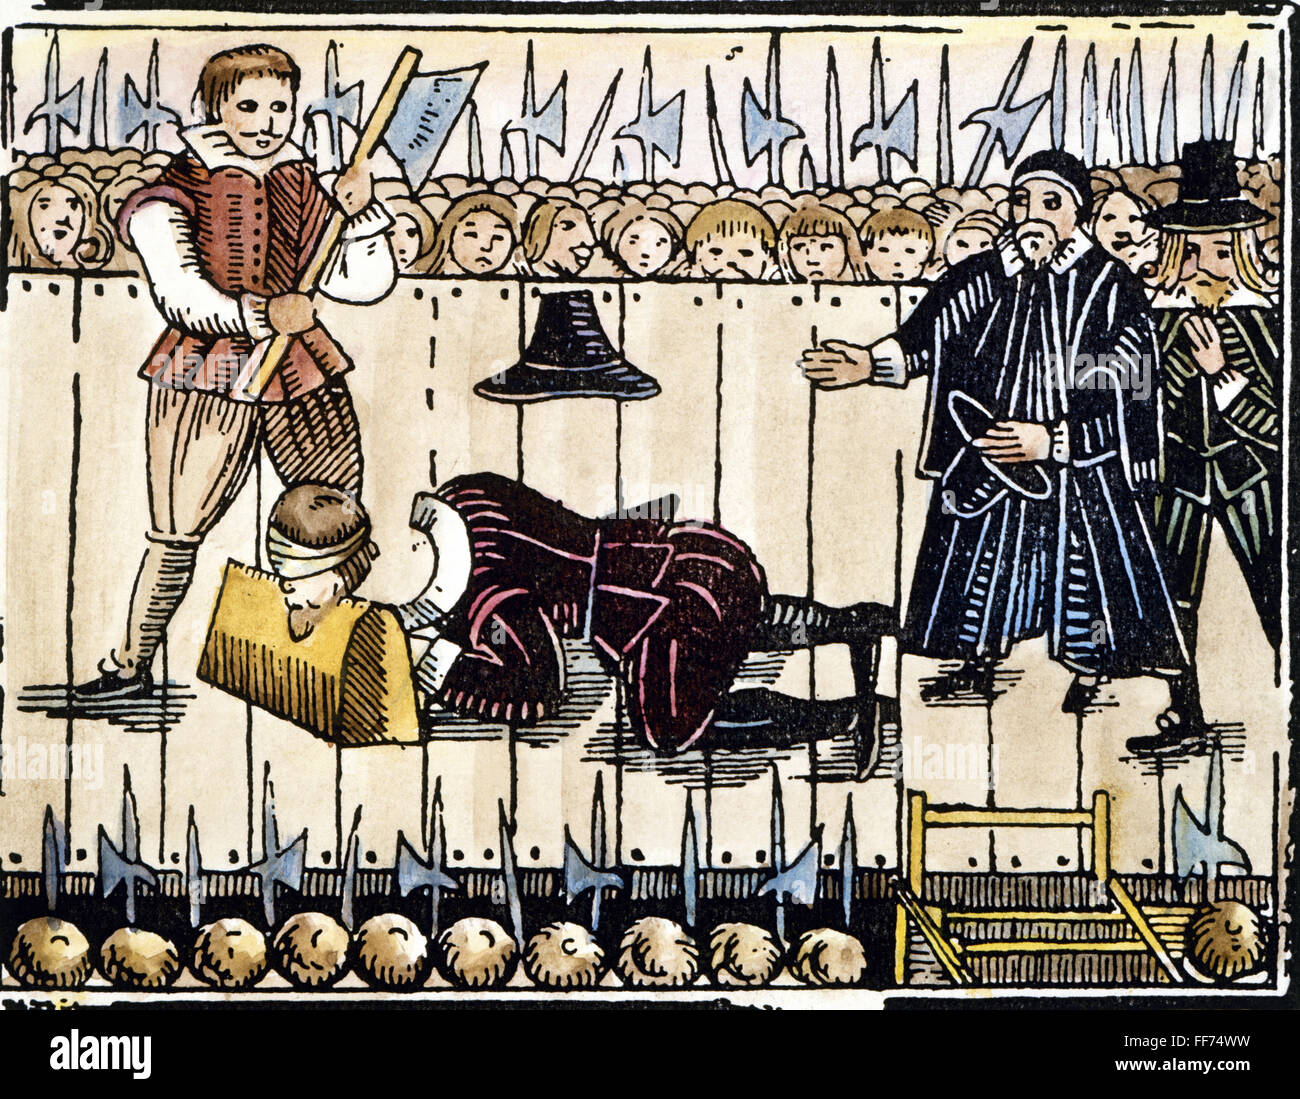 charles i and his execution essay Essay on execution of king charles i no works essay on charles i and his execution - charles i and his execution in order to consider whether charles.